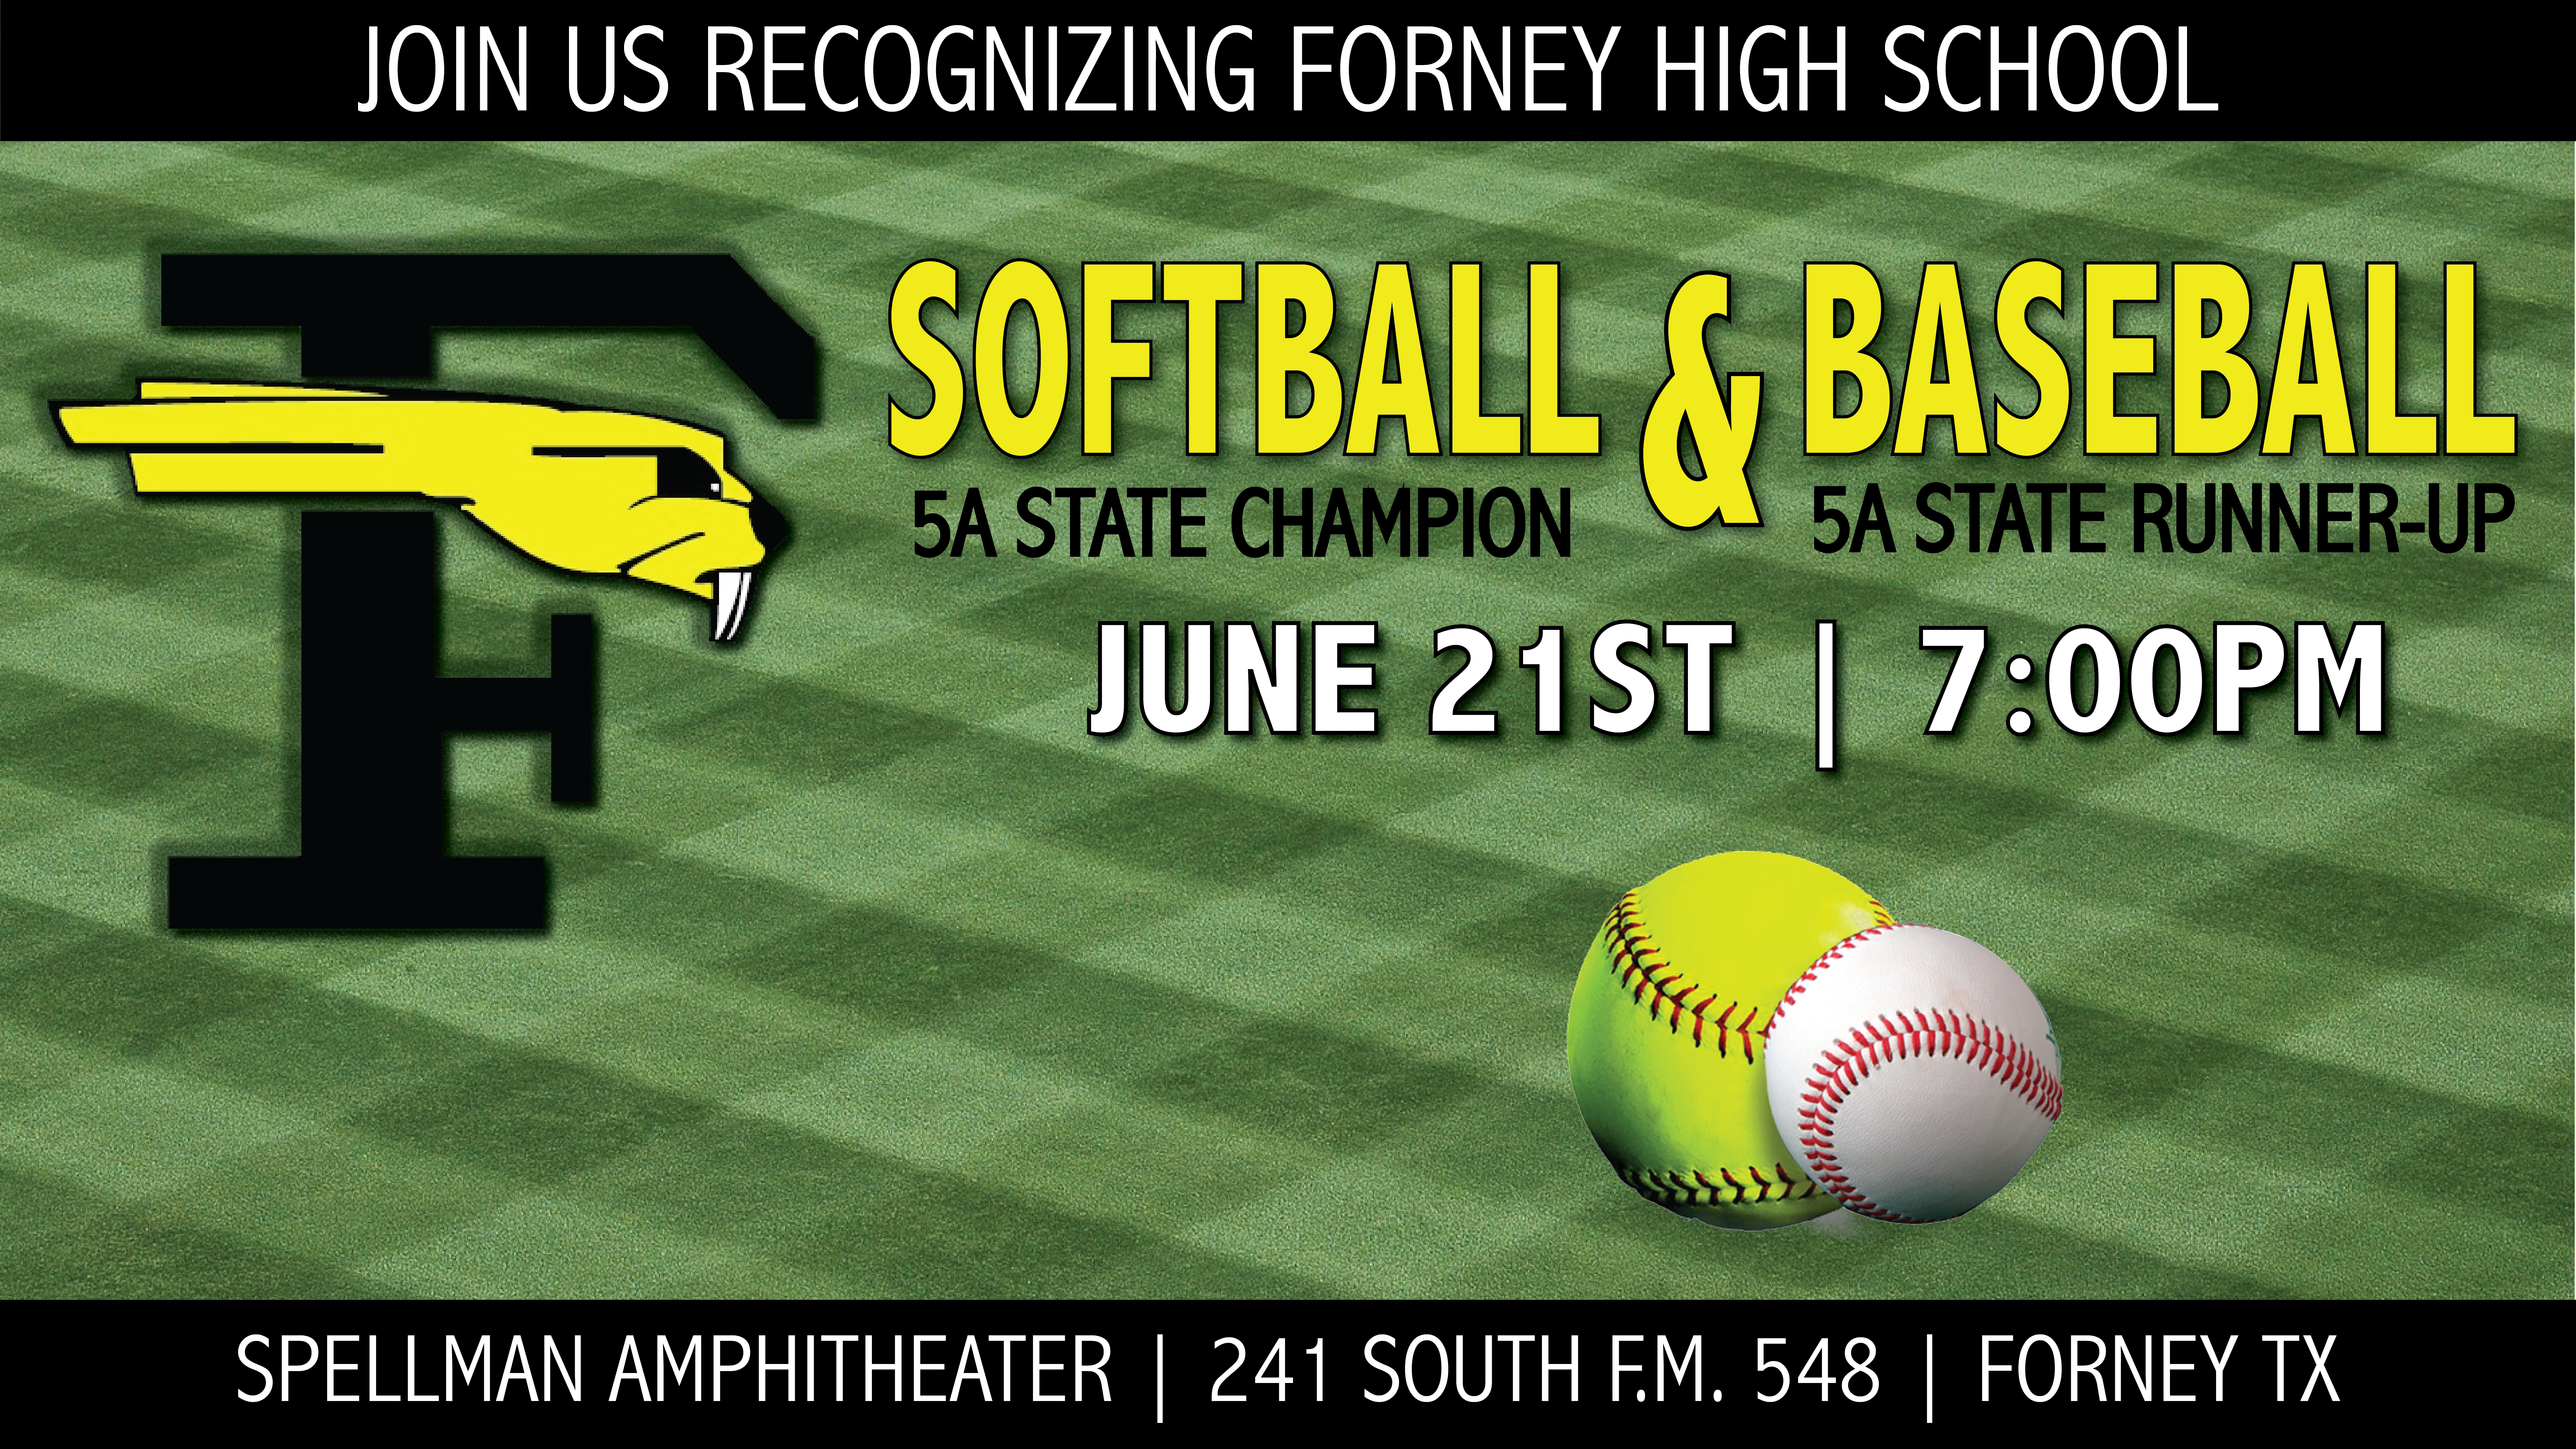 City of Forney to Recognize FHS Softball and Baseball Teams